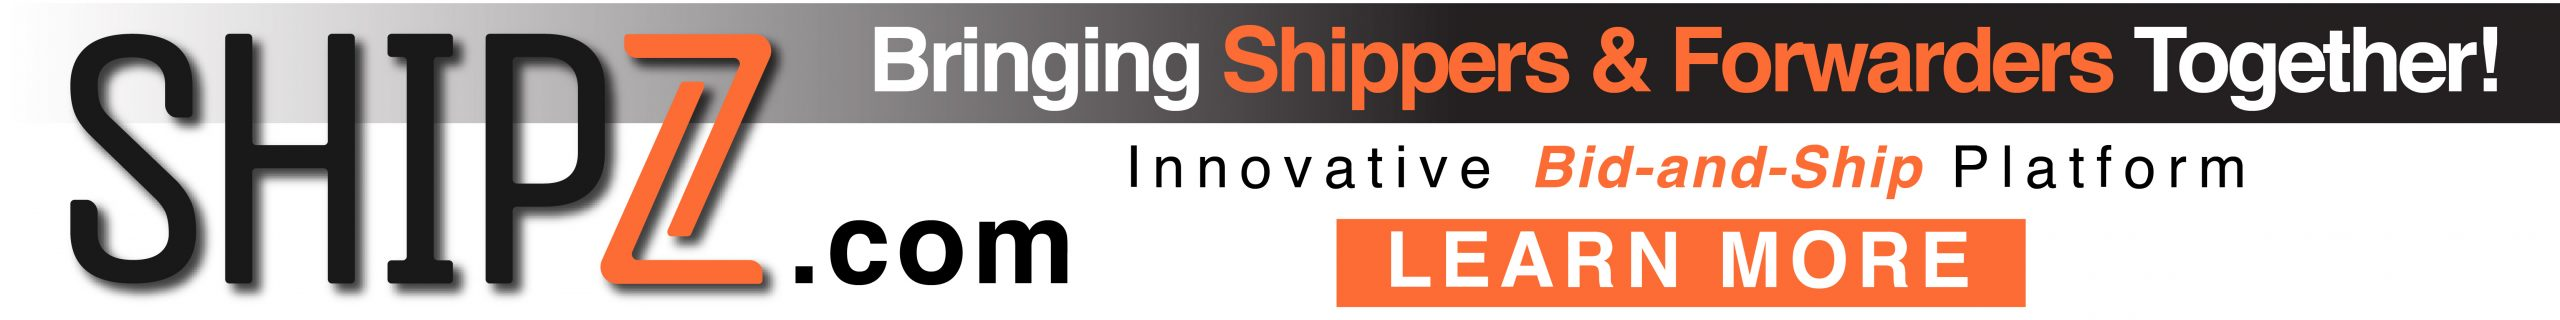 Shipz.com Bringing Shippers & Forwarders together